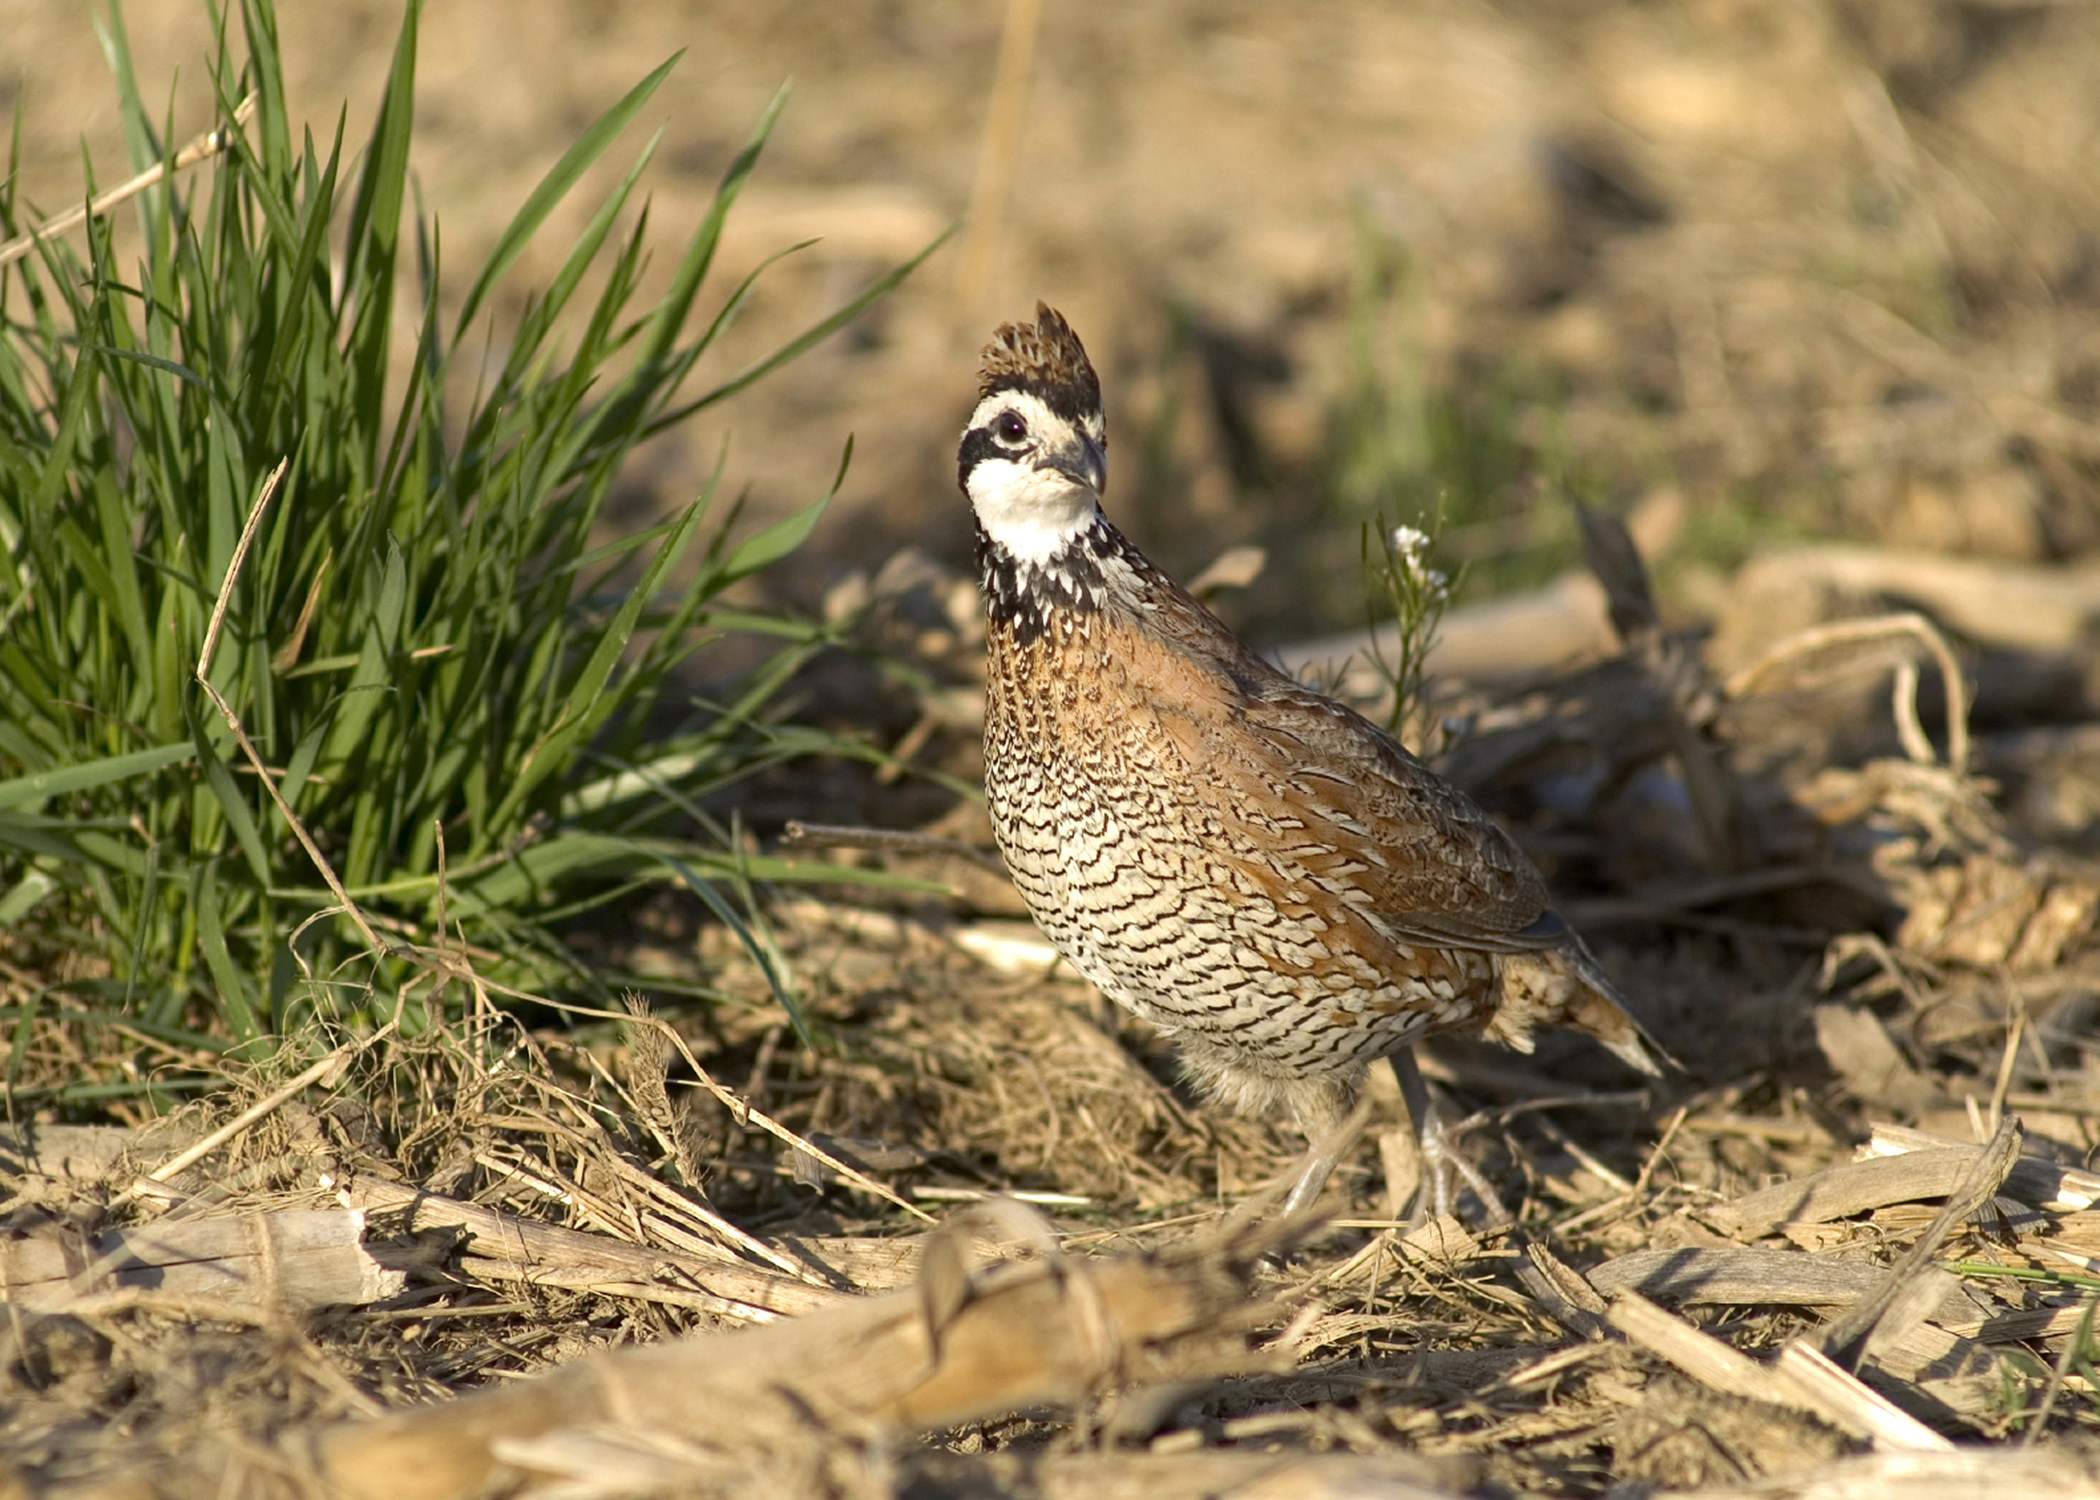 Bobwhite quail need our help to endure | Mississippi State ...